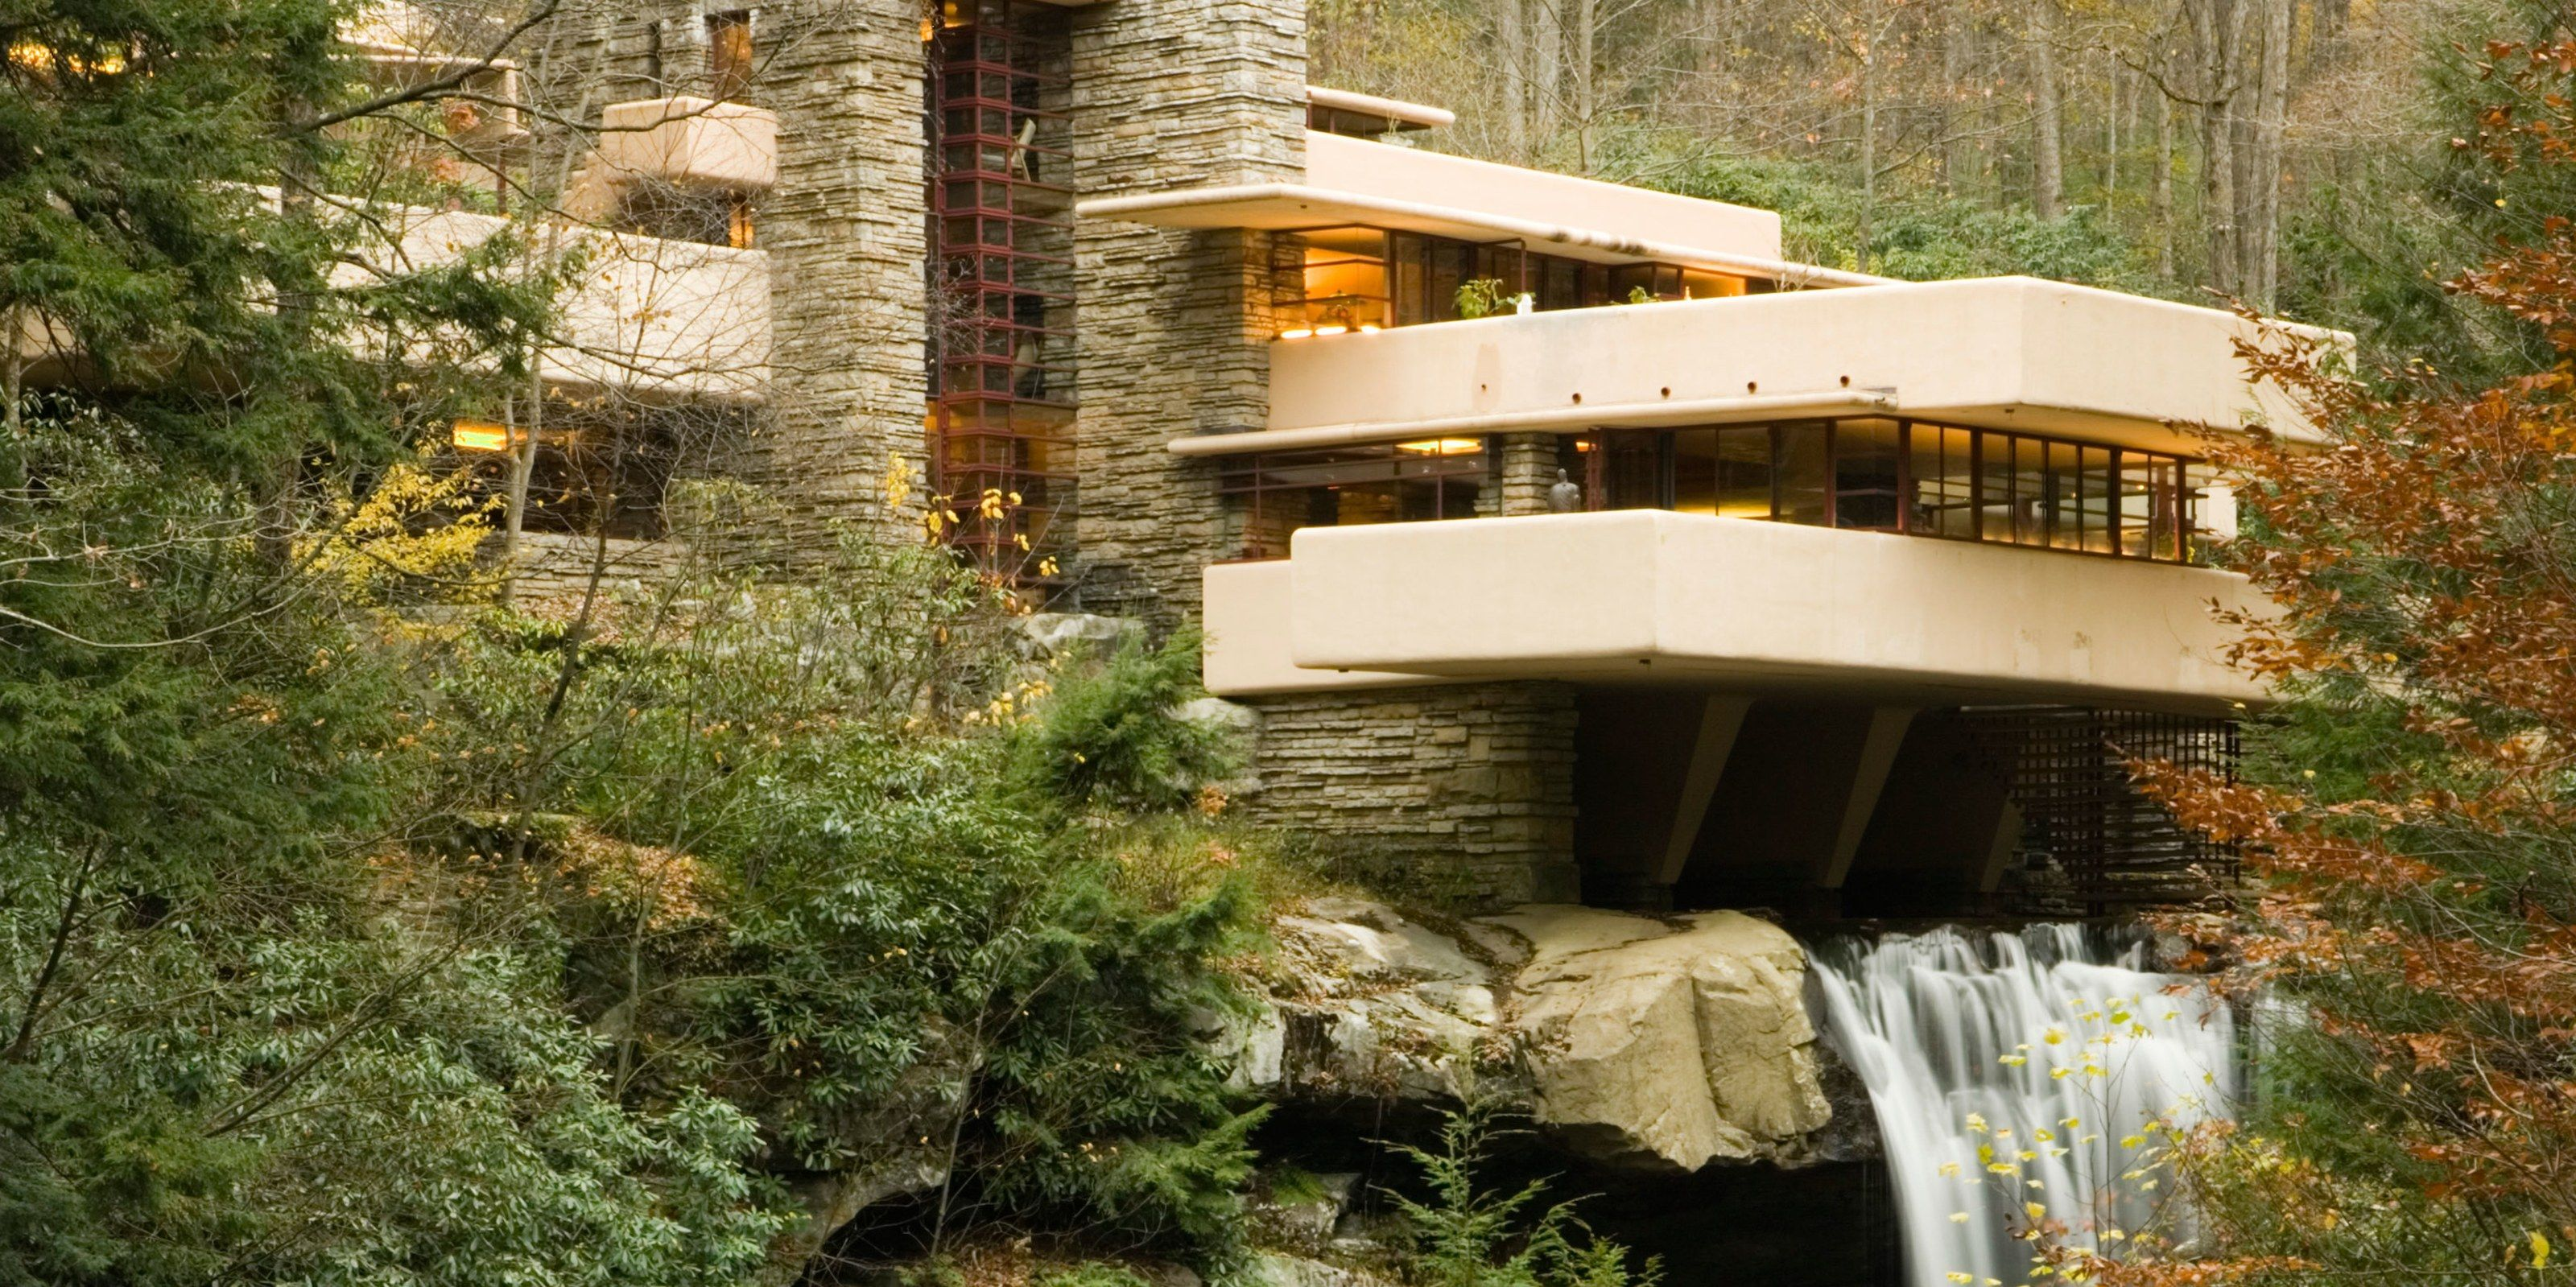 Exceptionnel 38 Unbelievable Building Design By Frank Lloyd Wright U2014 Fres Hoom